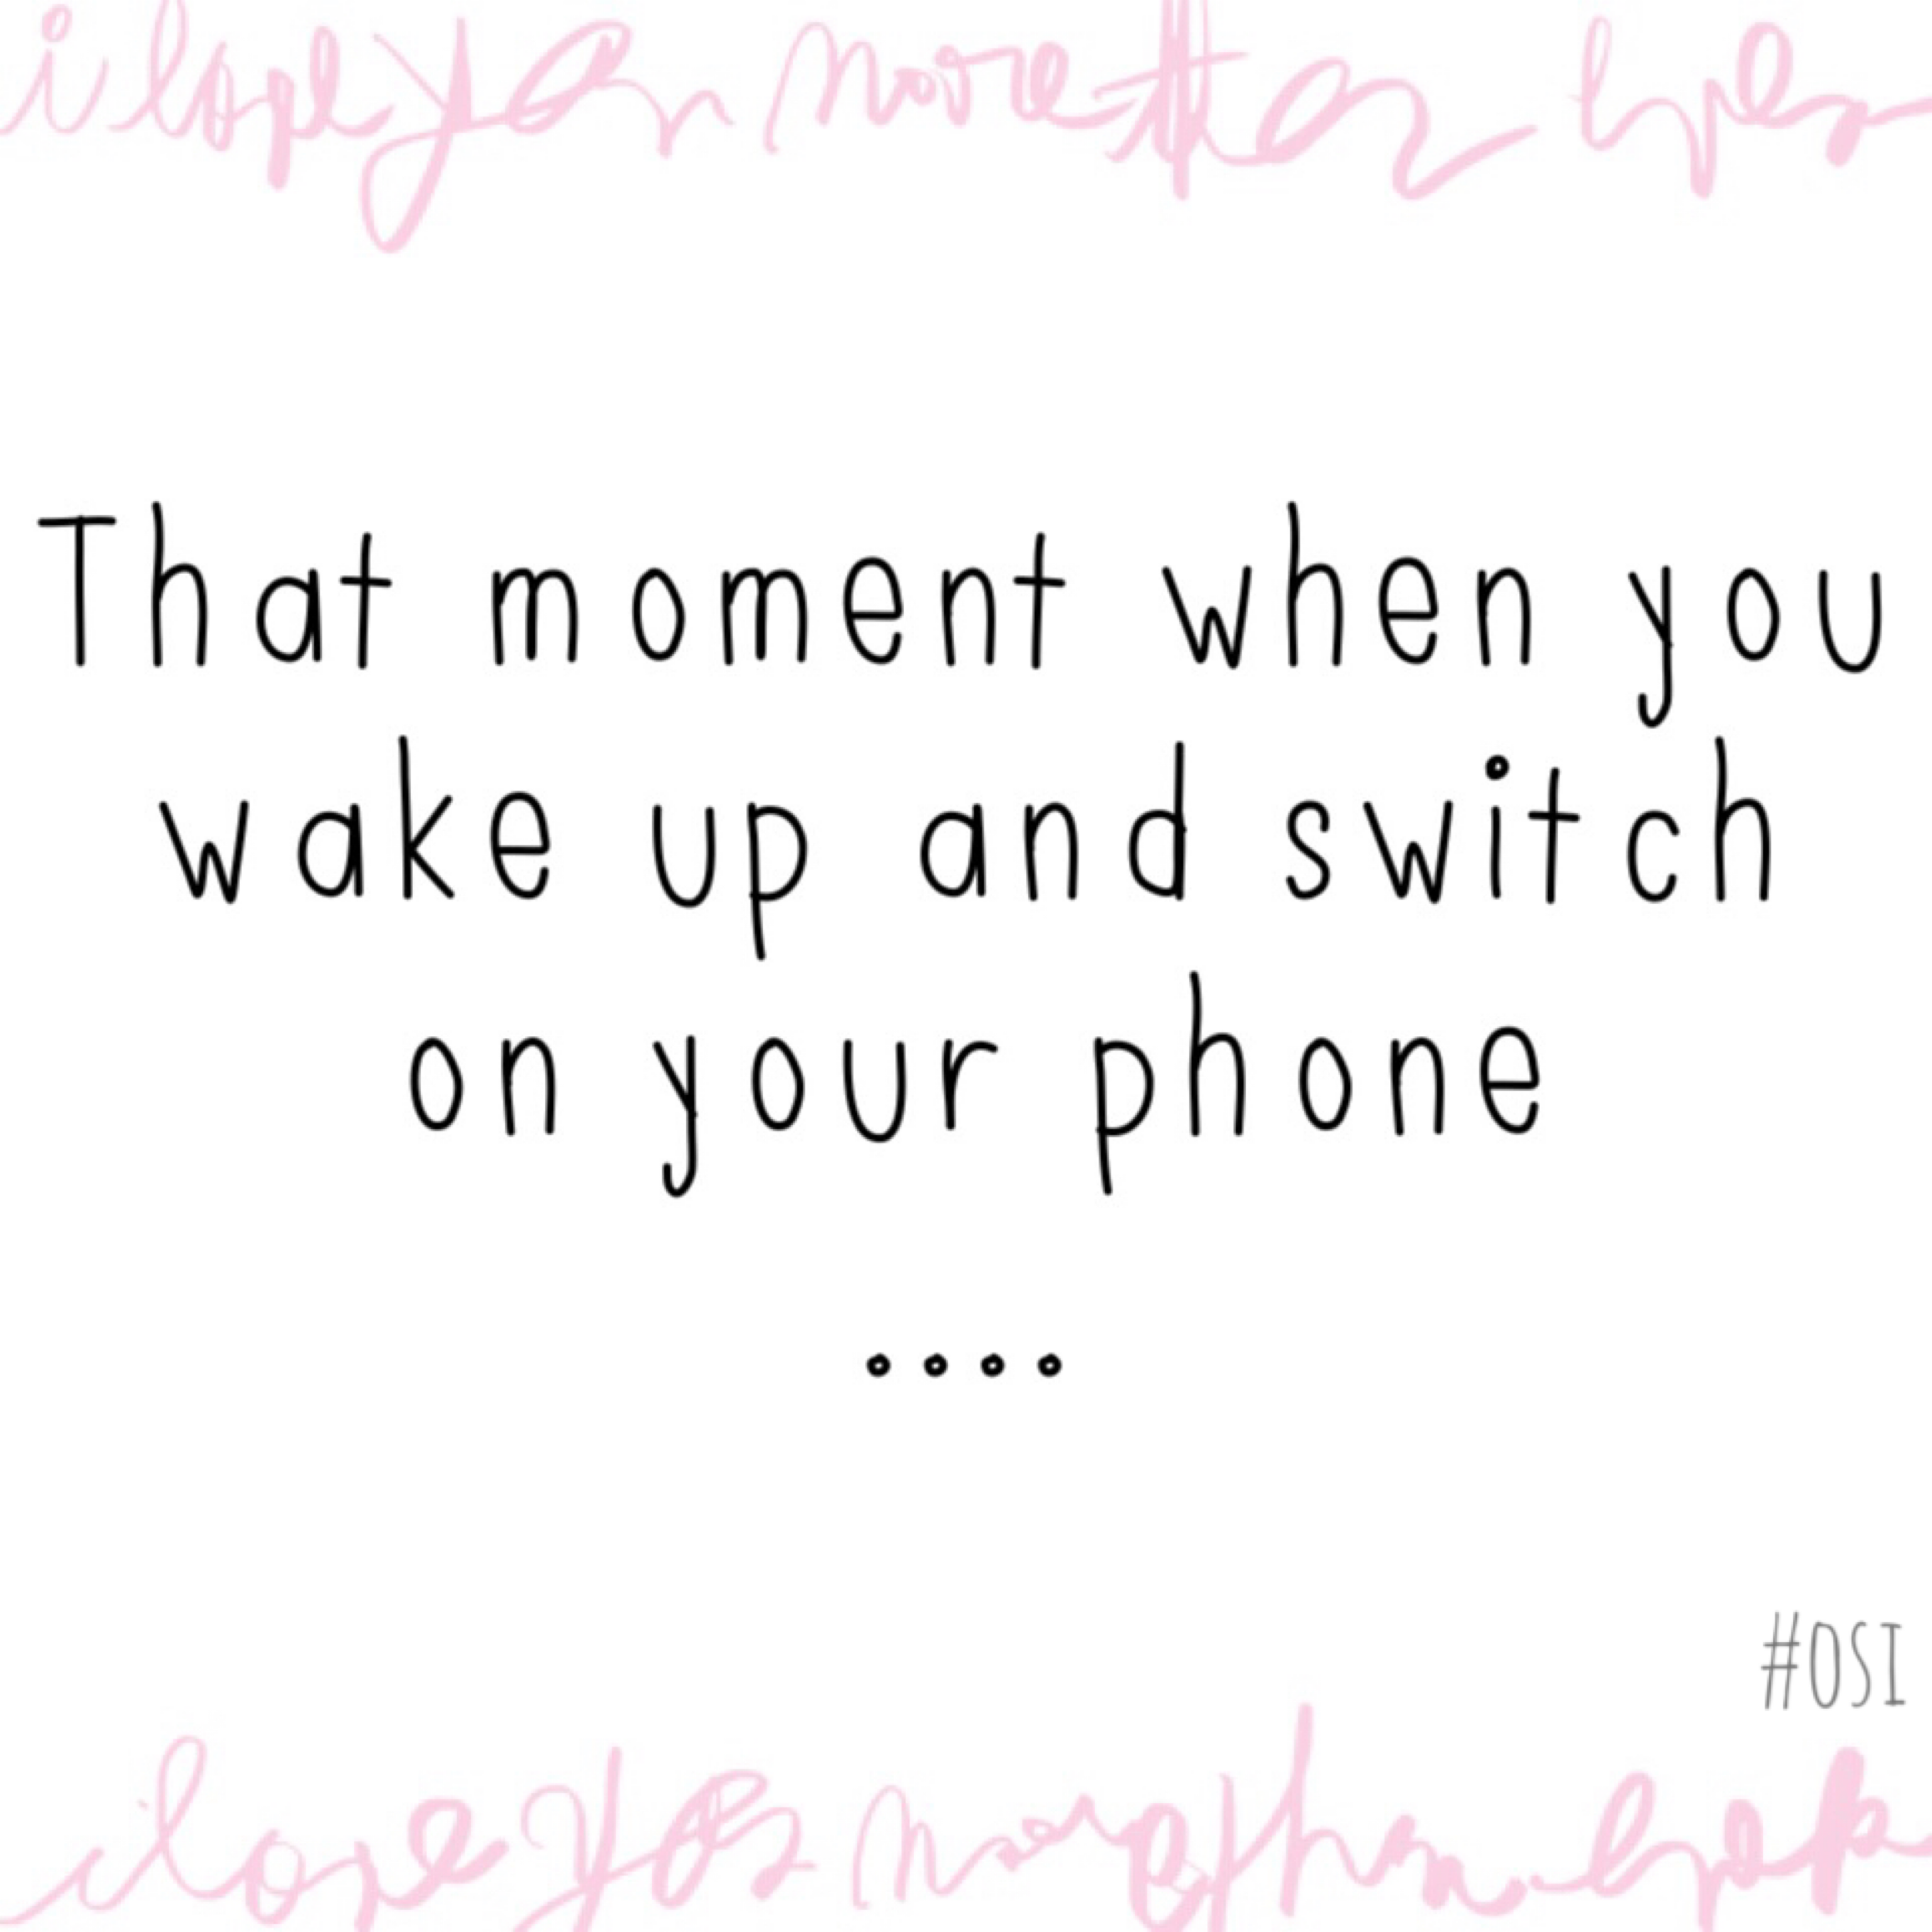 #quote #text #message #phone #love #friendship #wakeup #osi